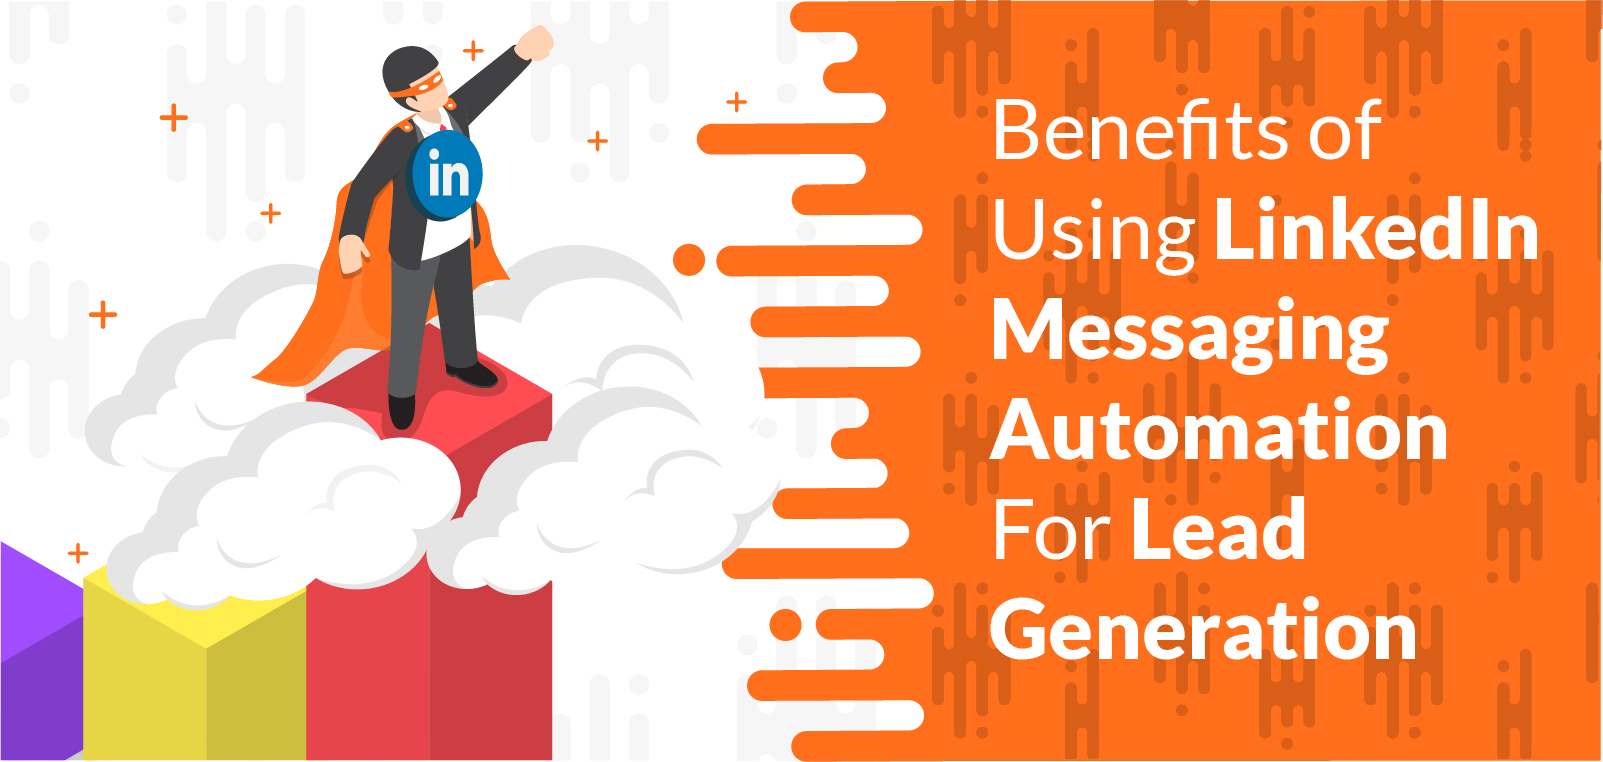 5 Benefits of Using LinkedIn Messaging Automation For Lead Generation